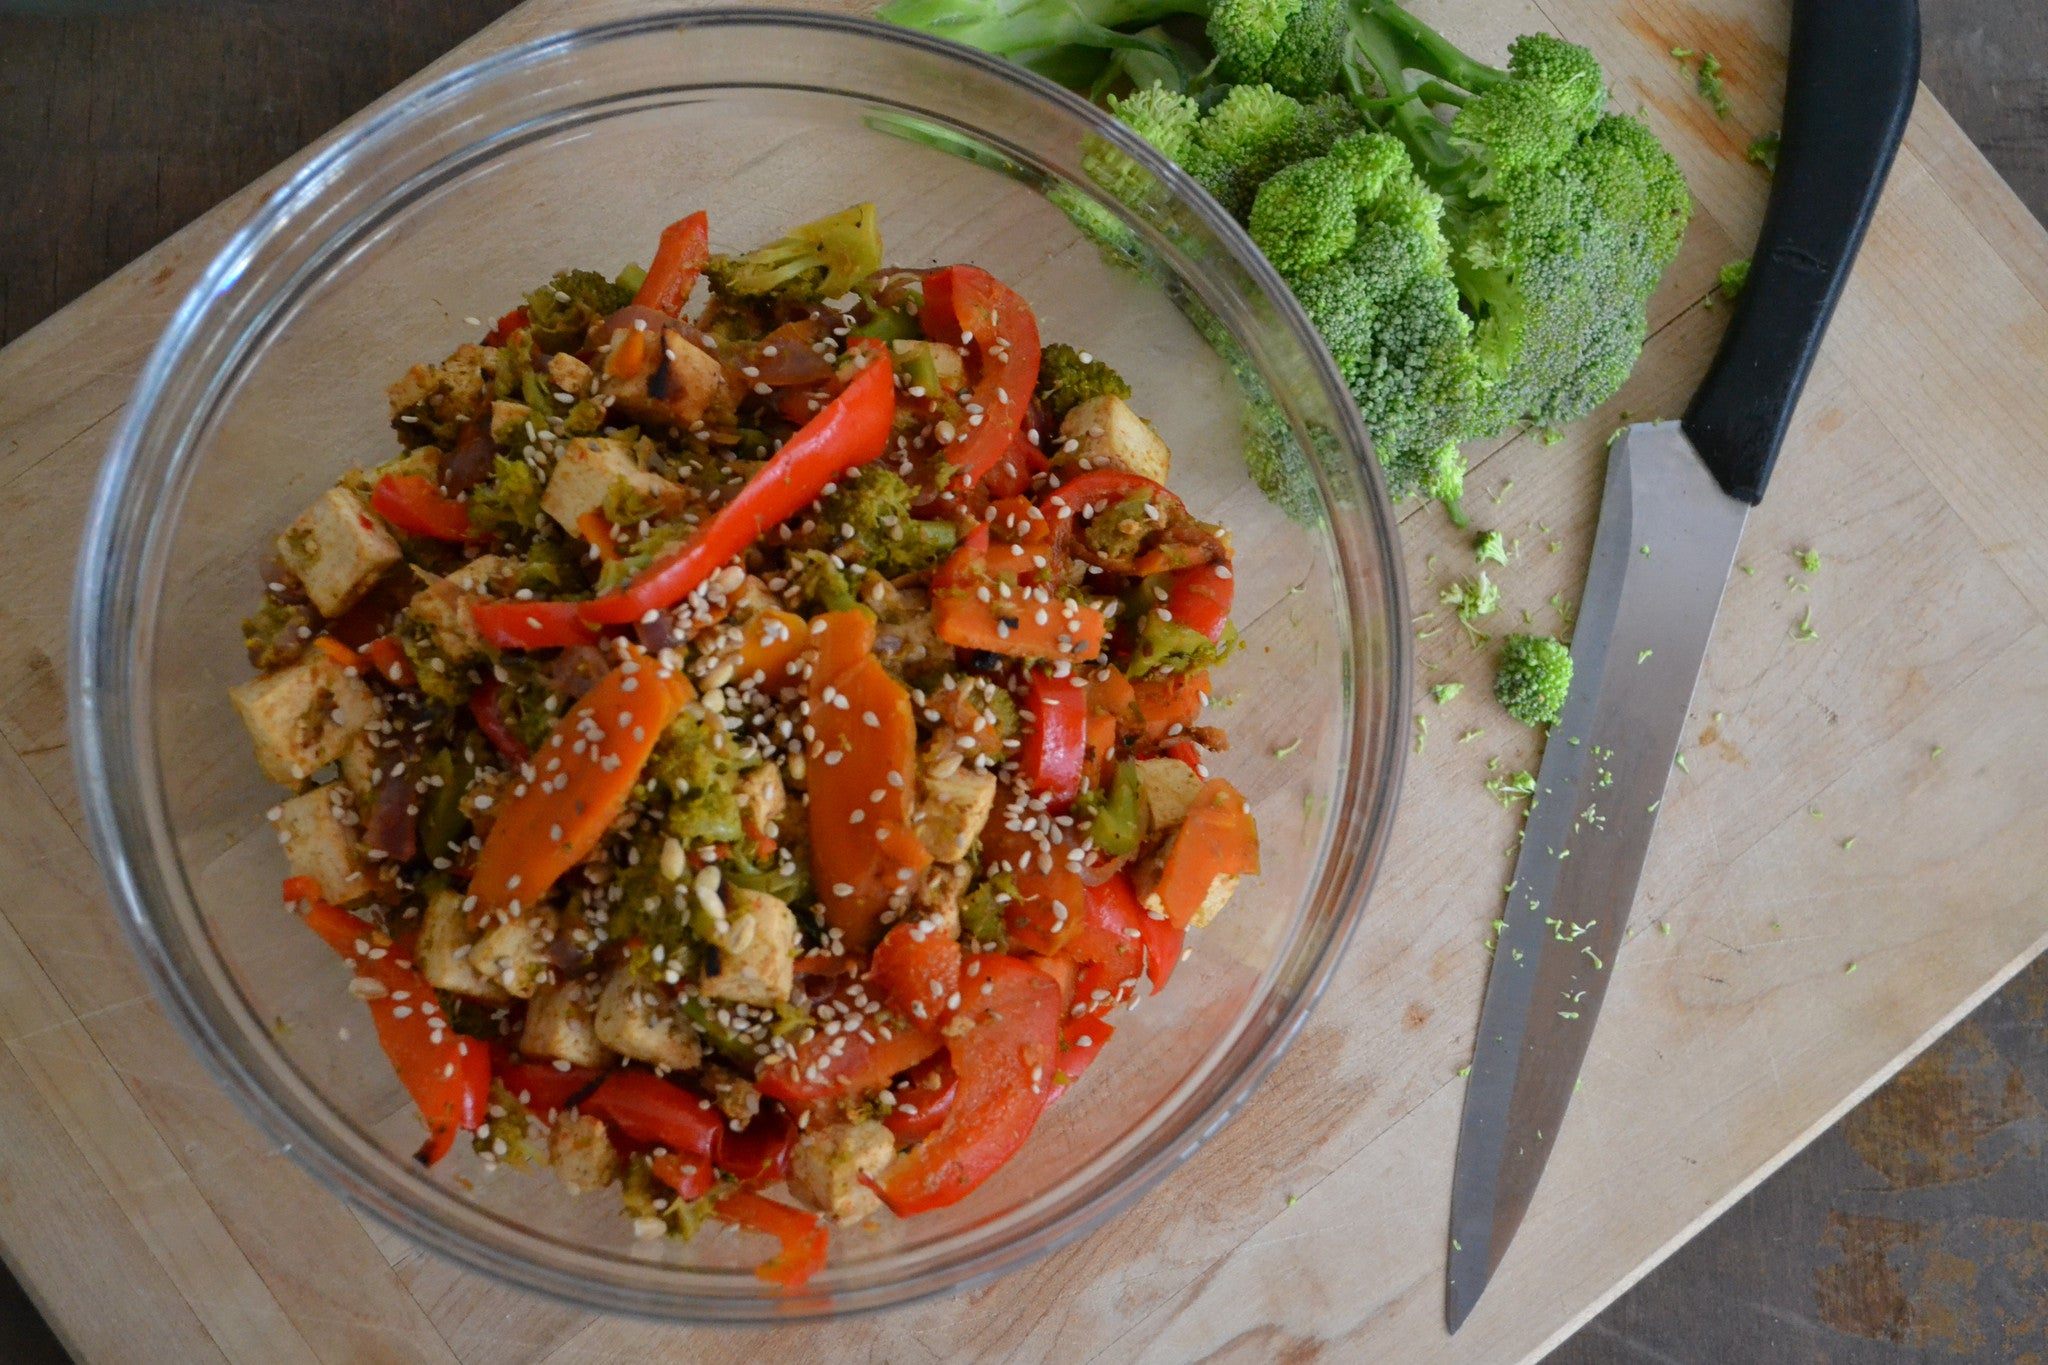 Vegetarian Stir Fry with Thai Peanut Sauce